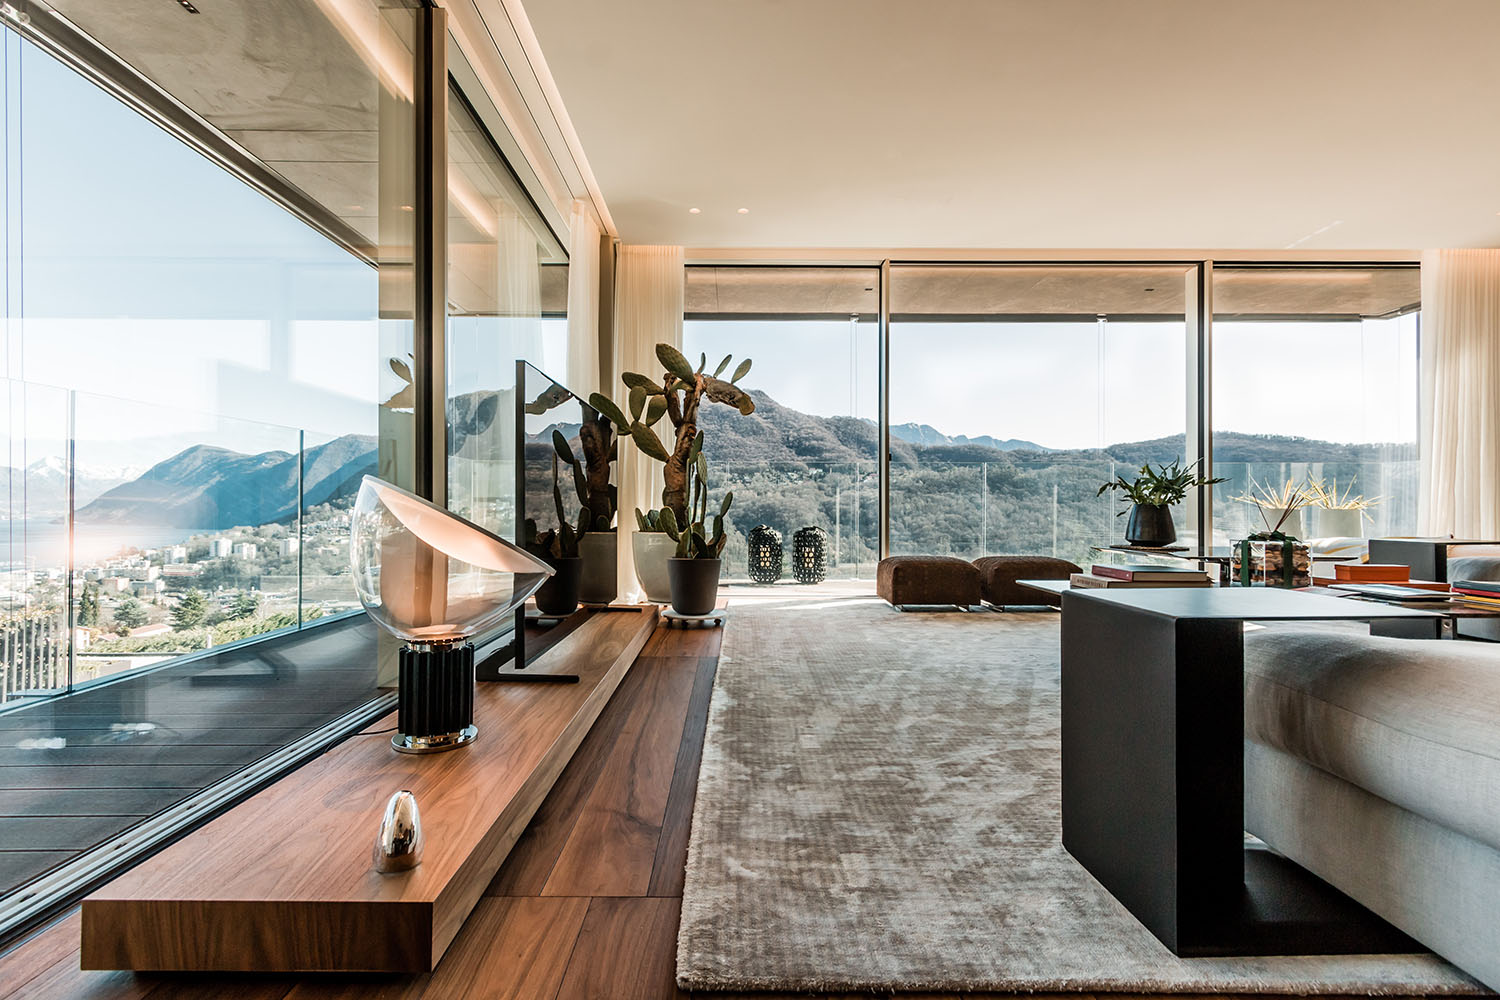 Interior design view Giacomo Carena